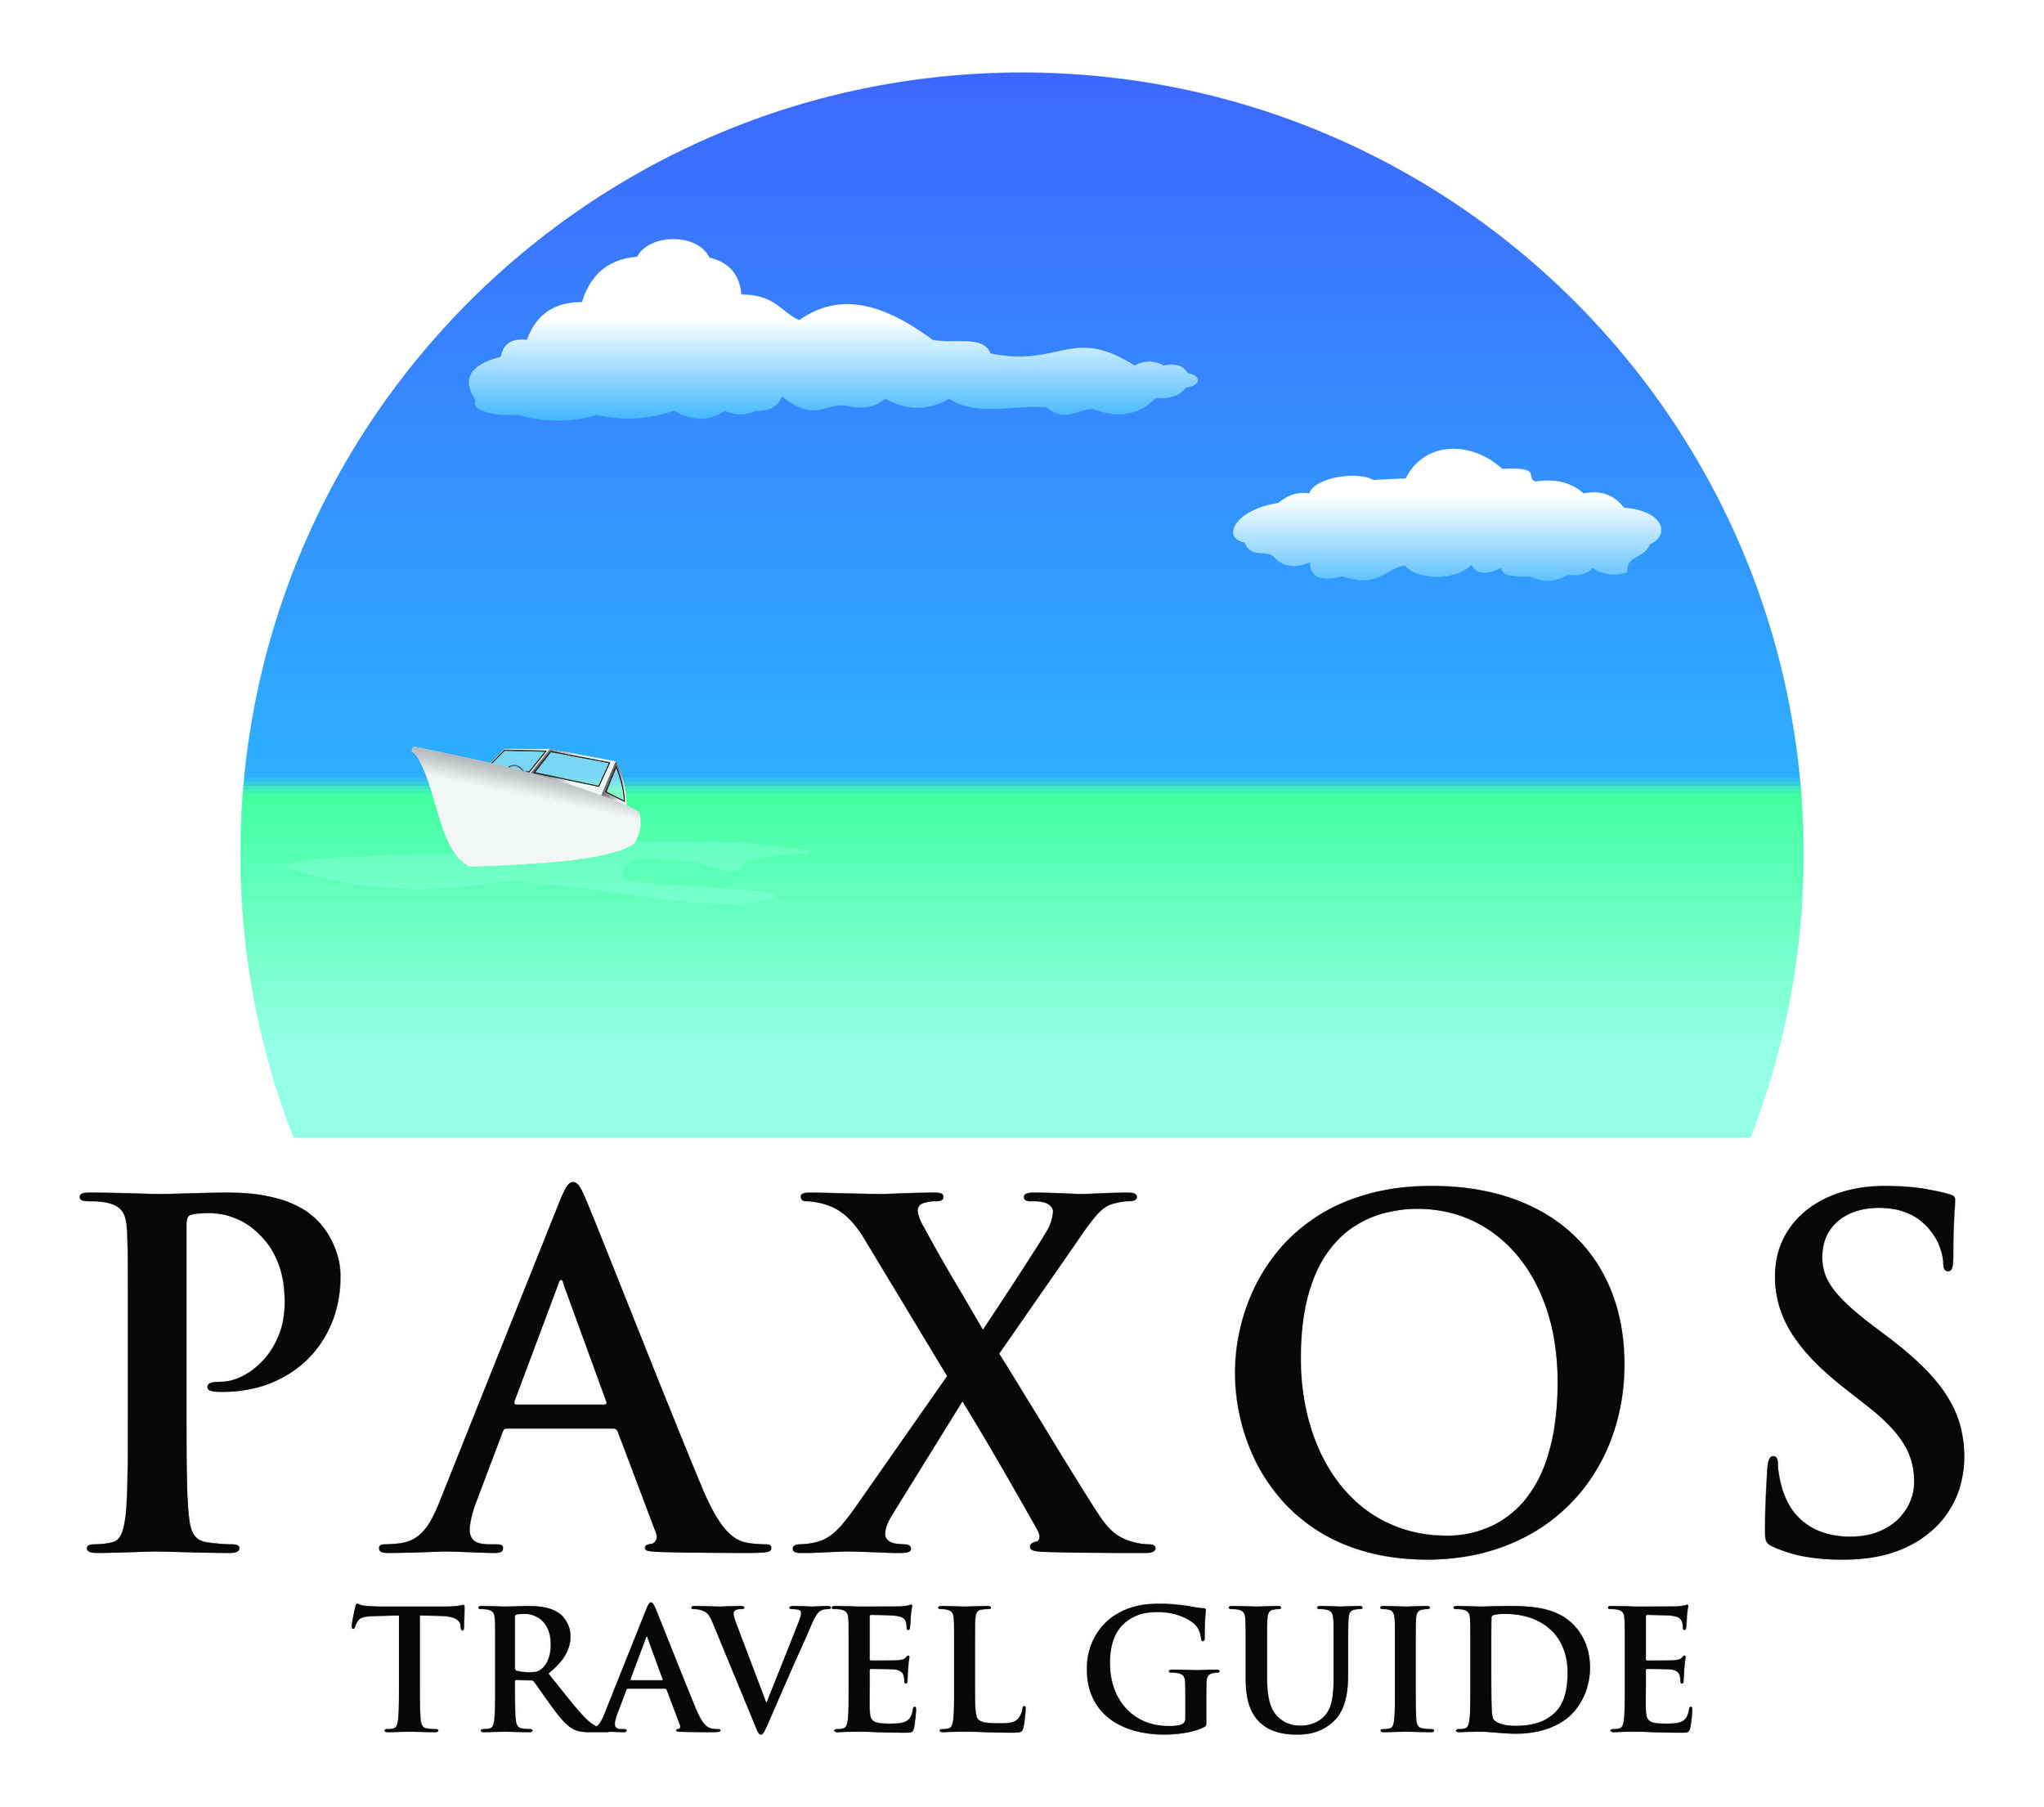 Paxos Travel Guide by Rick McEvoy